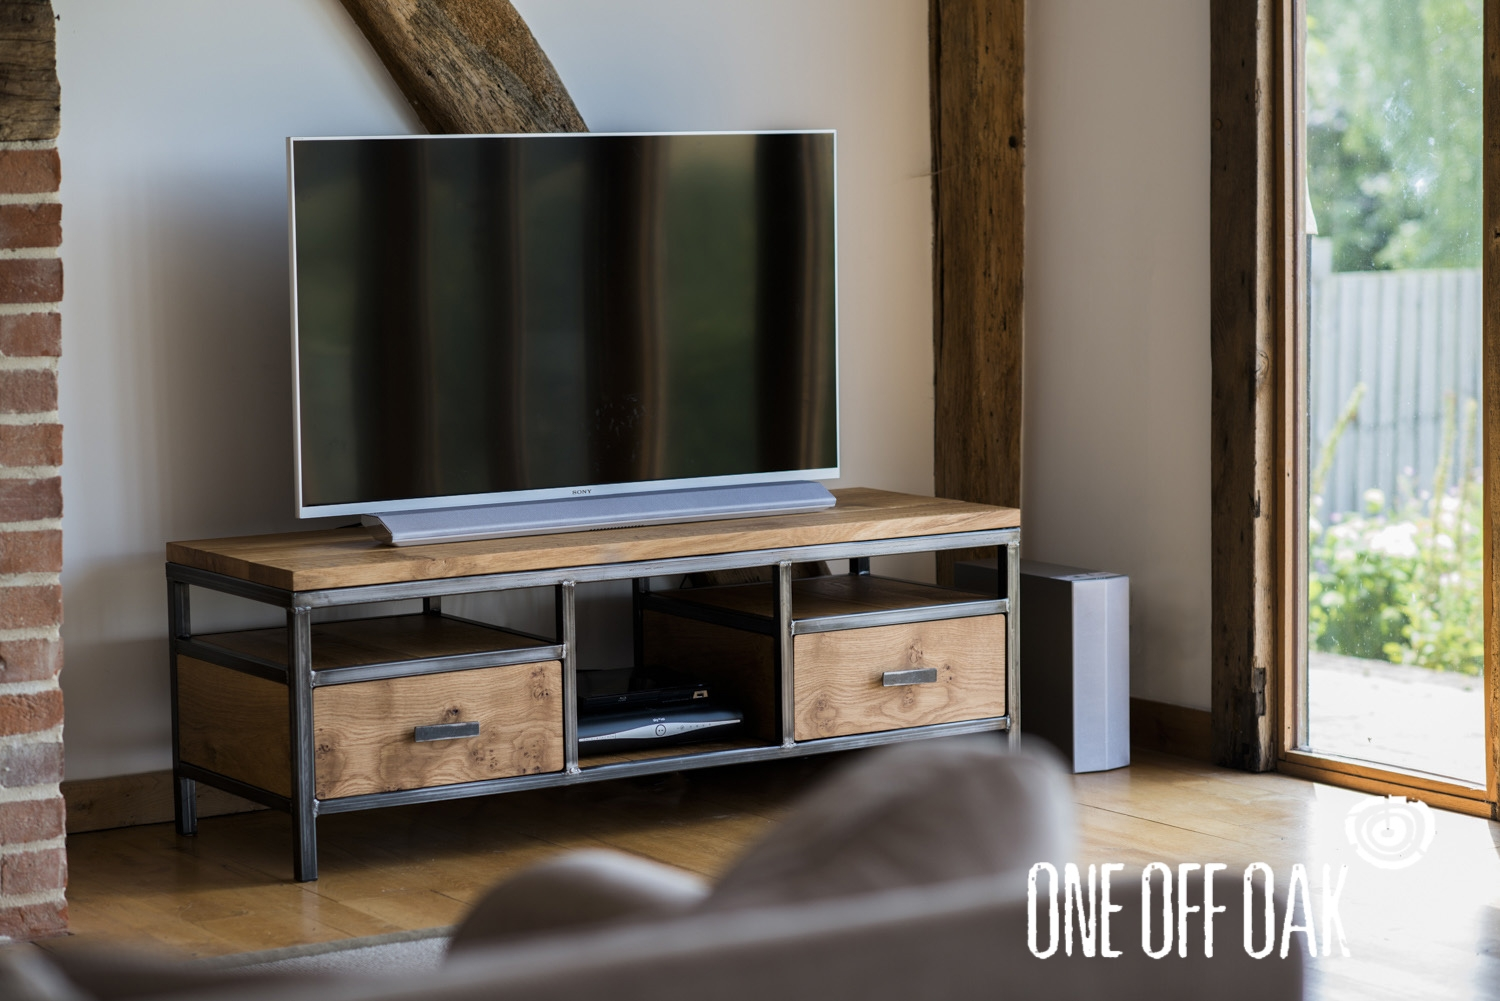 Tv Cabinet Bespoke Handmade Furniture From English Oak With Bespoke Tv Cabinet (Image 15 of 15)